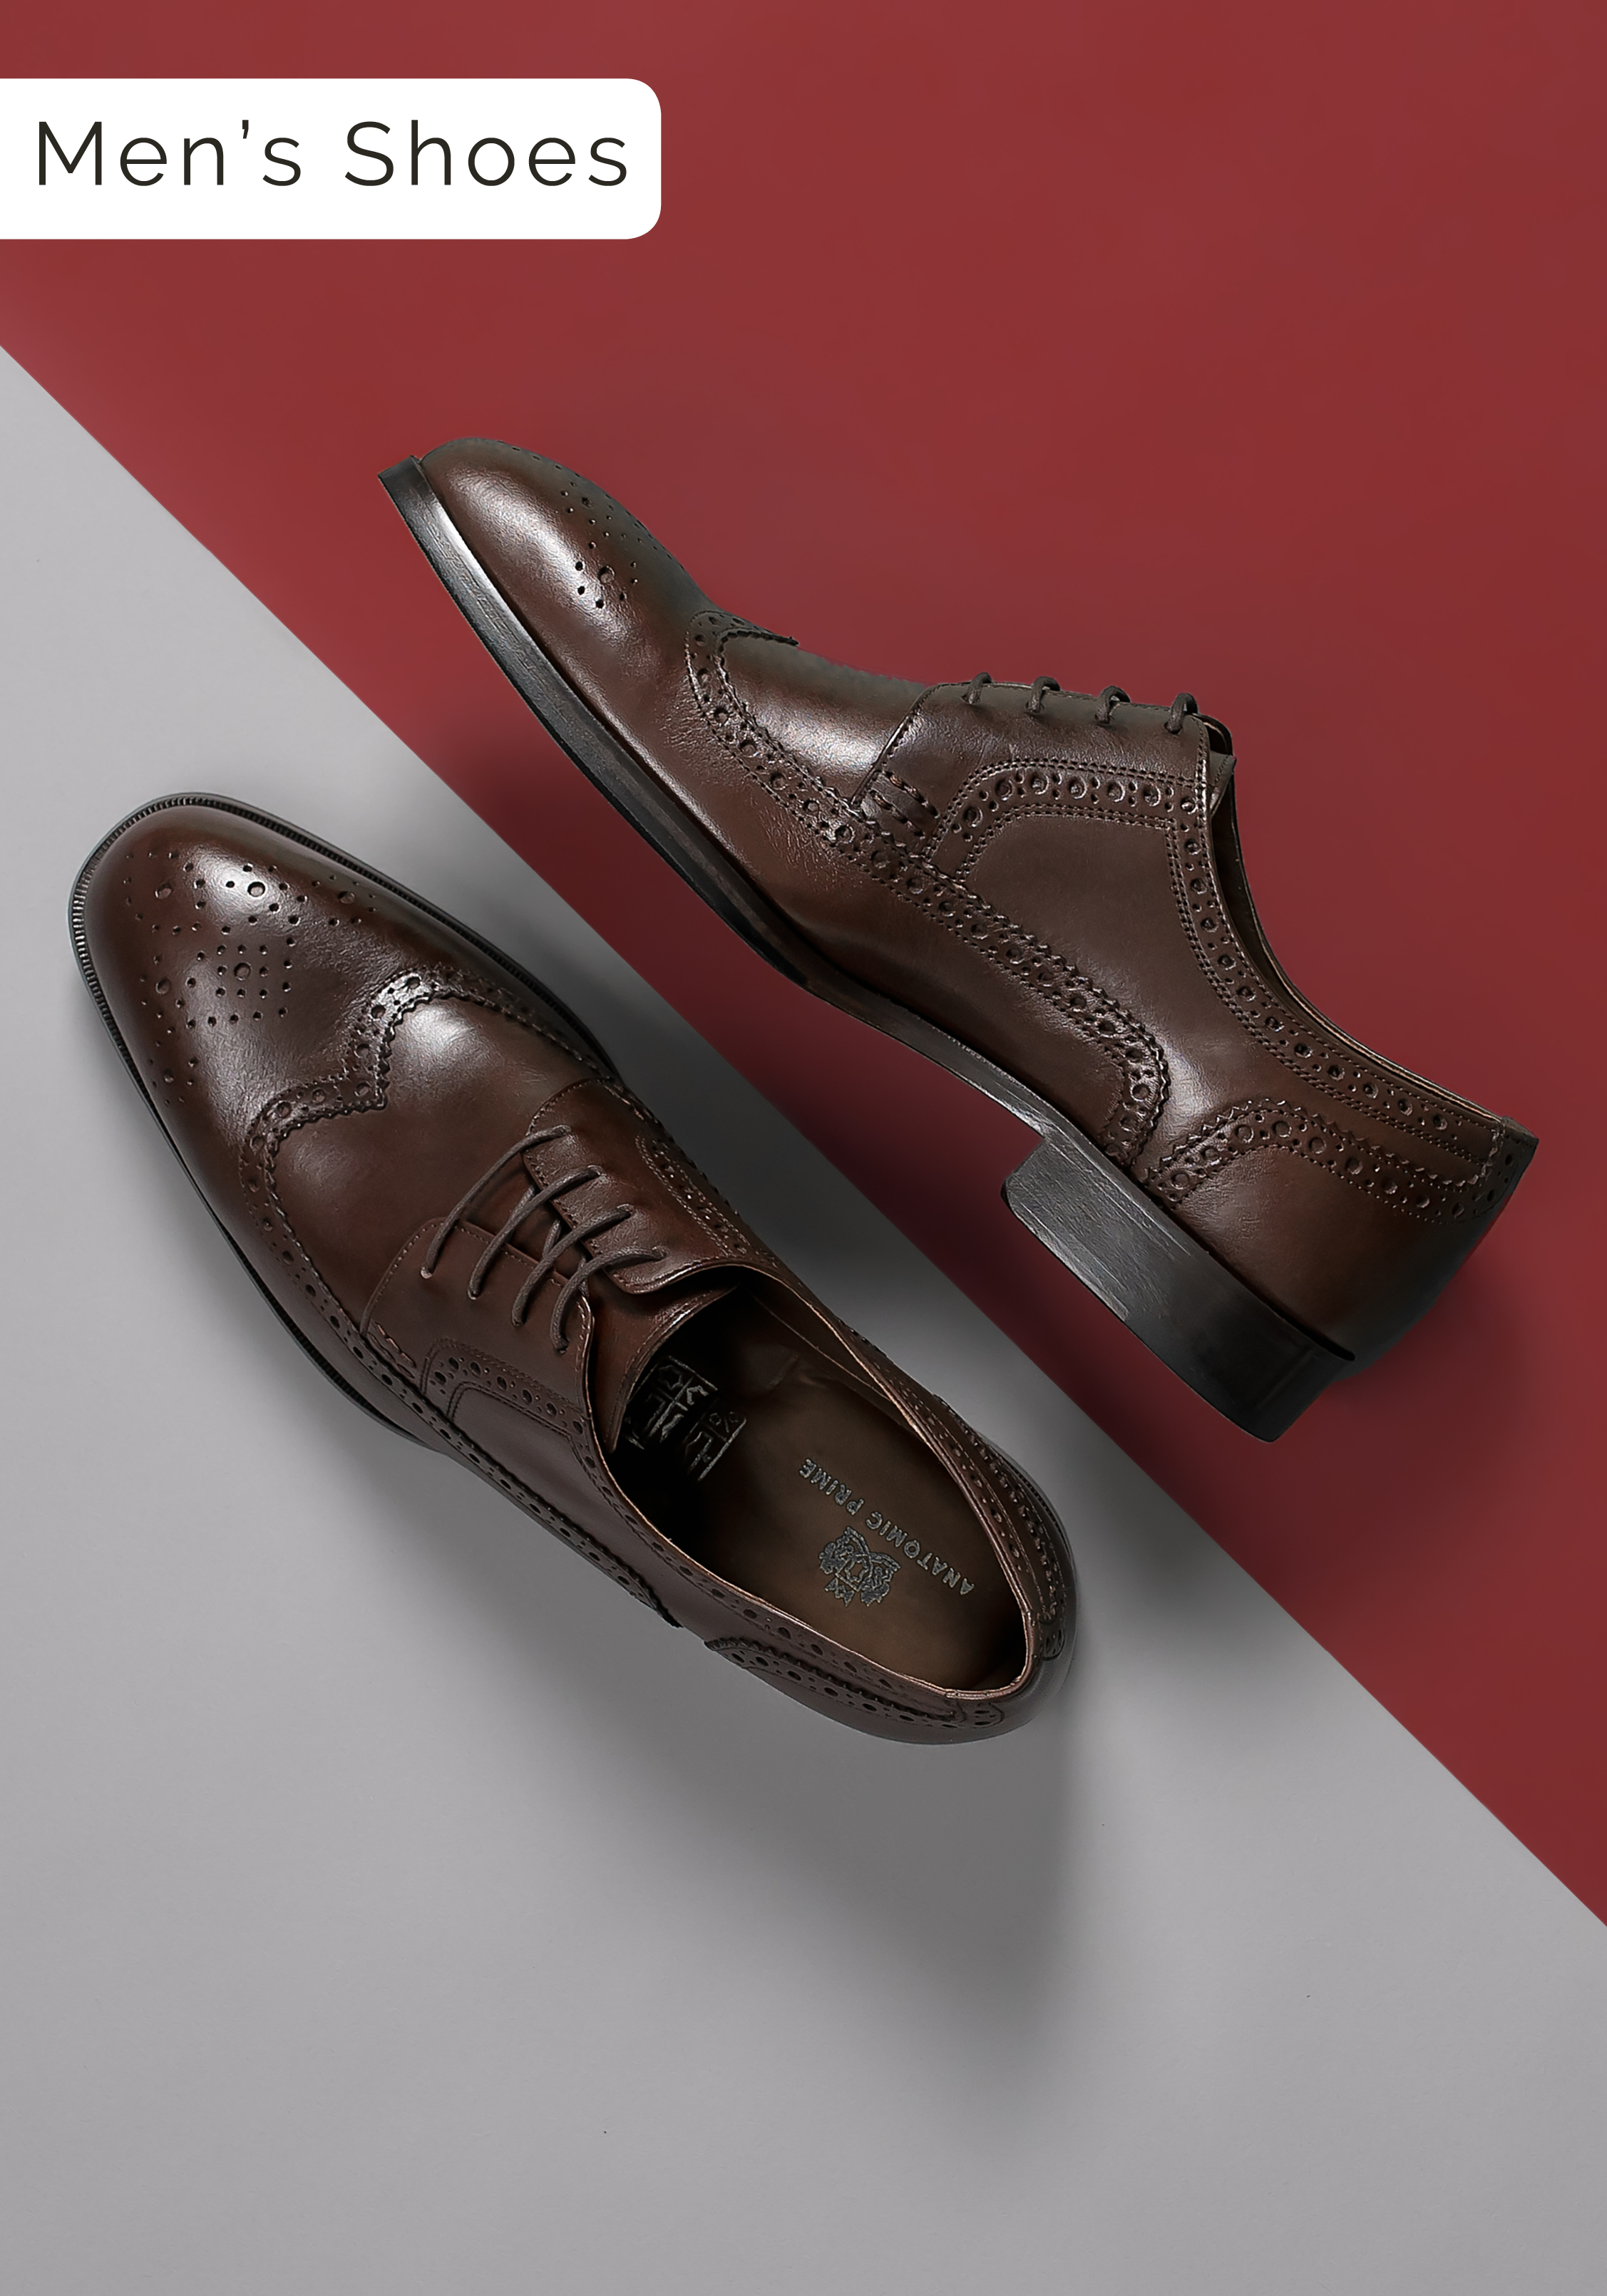 Forex anatomic shoes for men forex trading price action